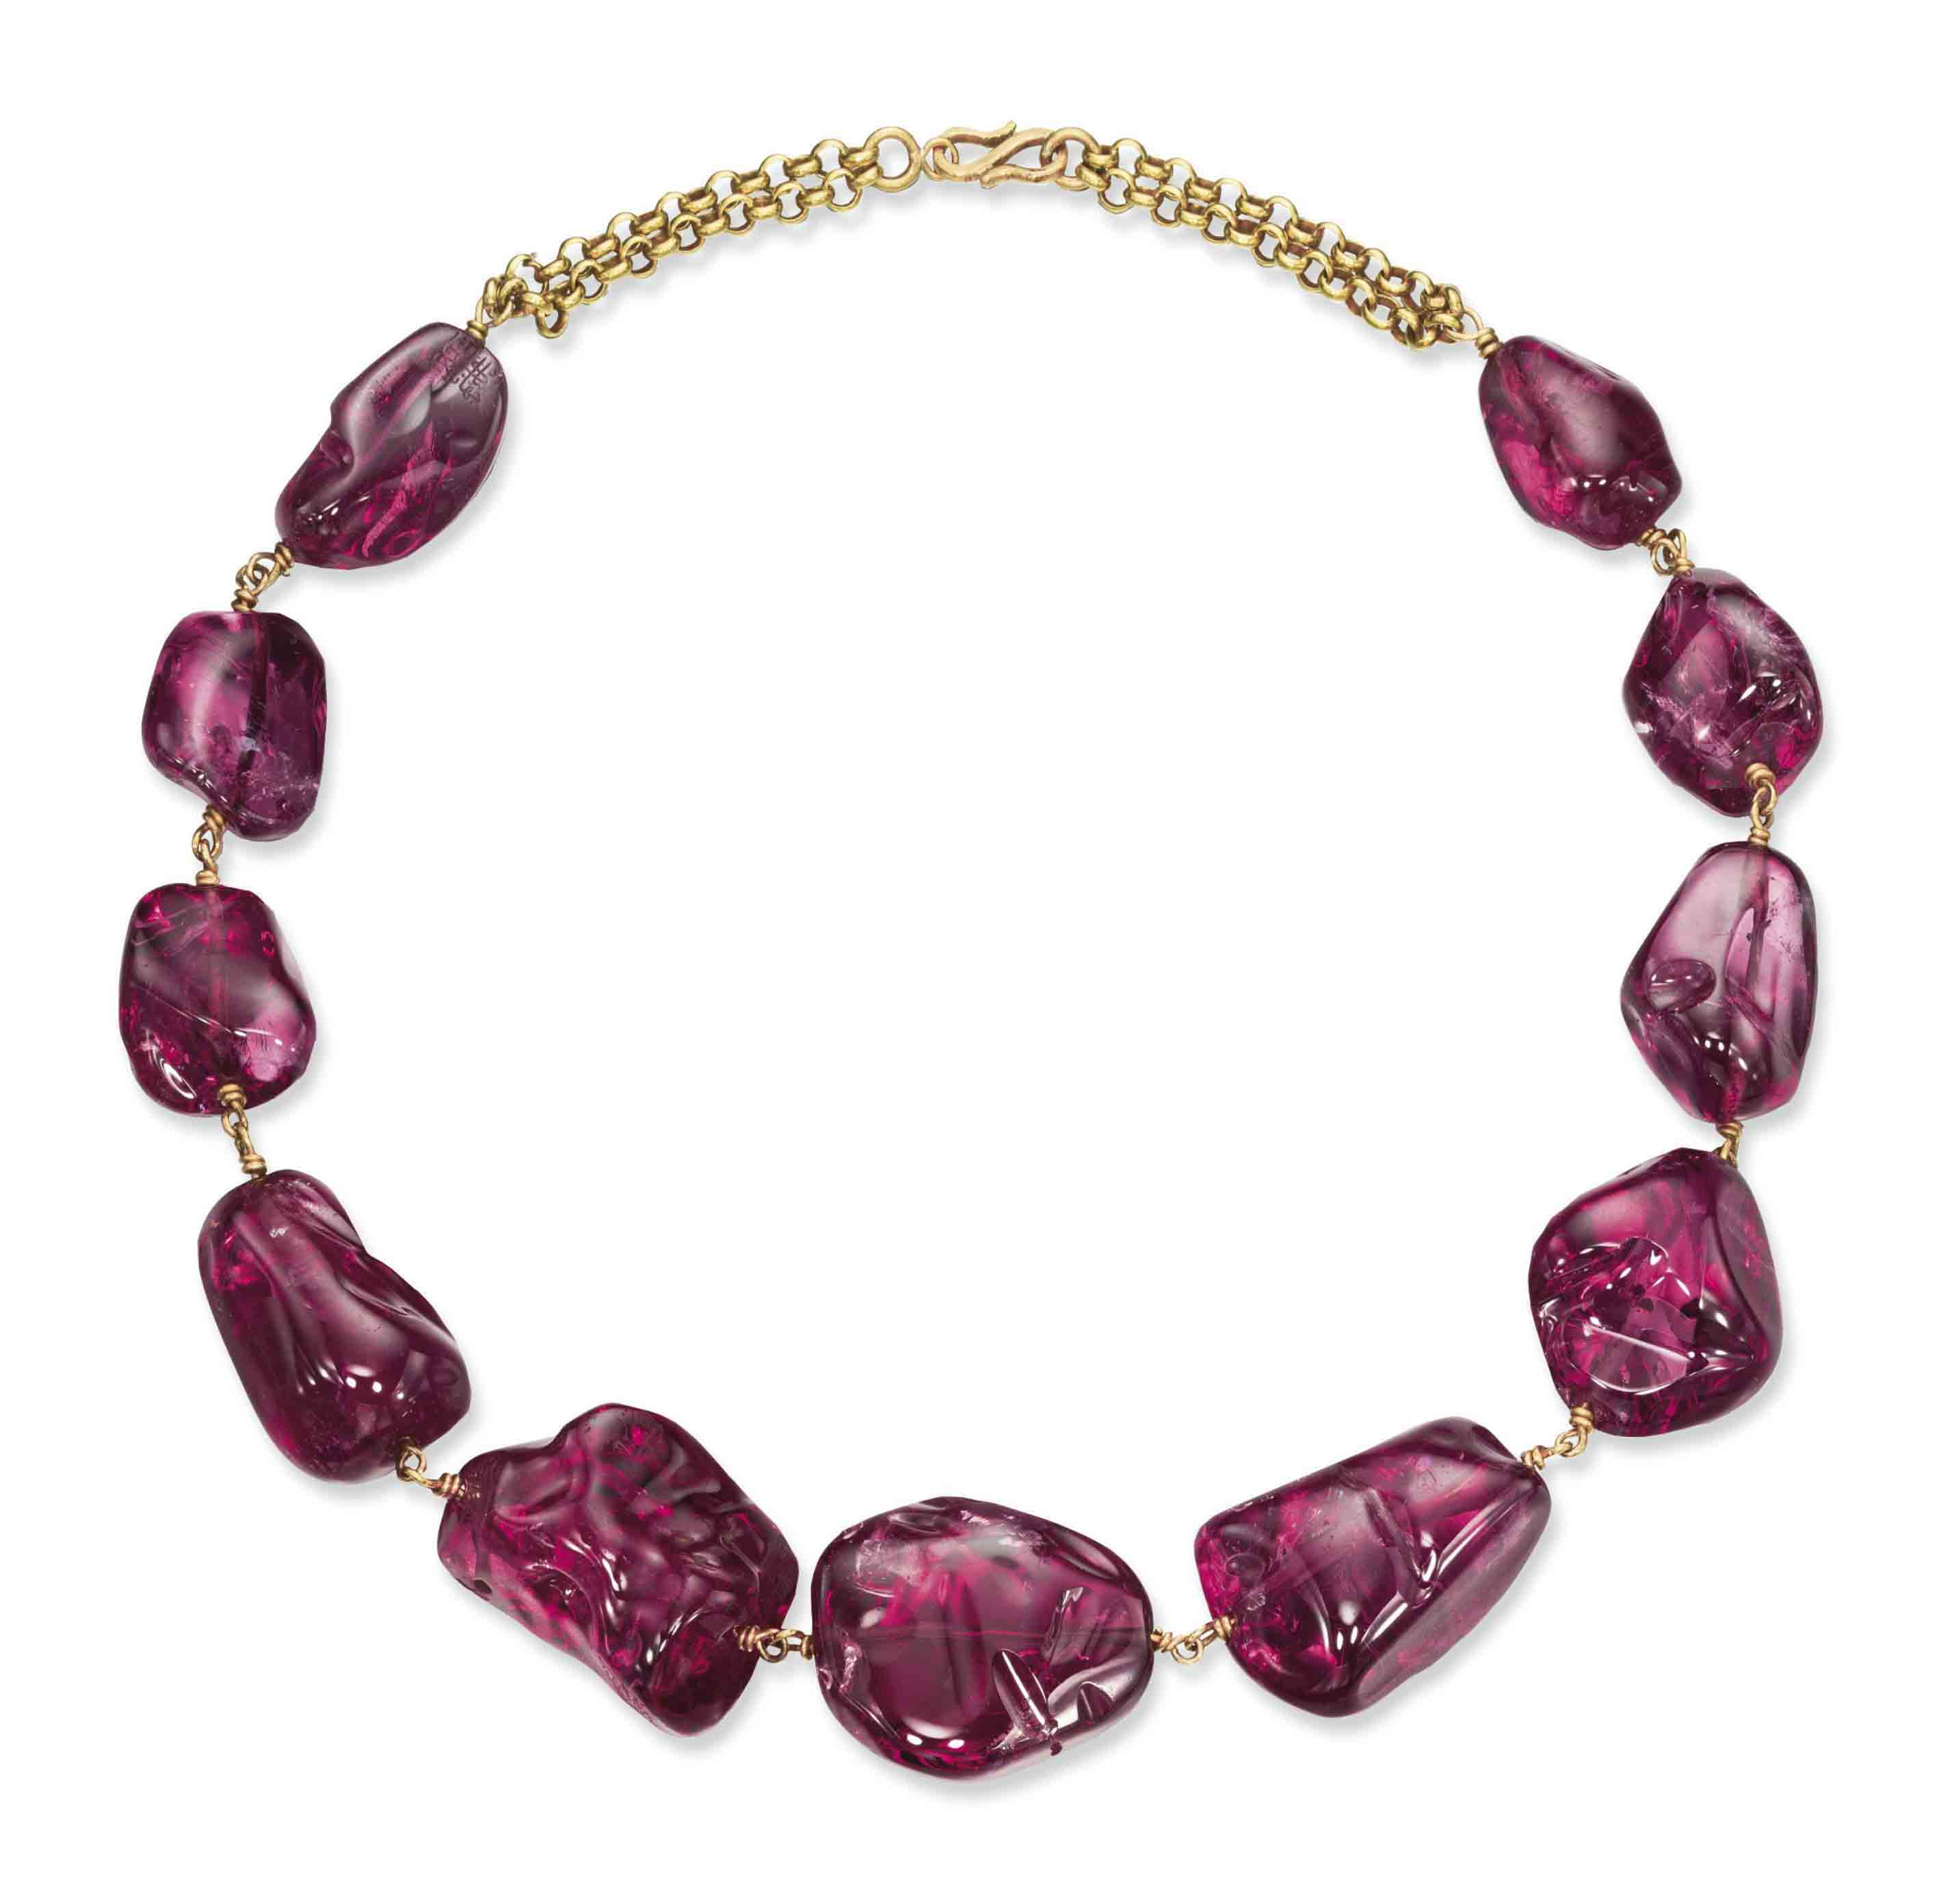 melissa gorga img necklace envy by products spinelynecklacebypearlfectionbyhl pearlfection y l h spinel